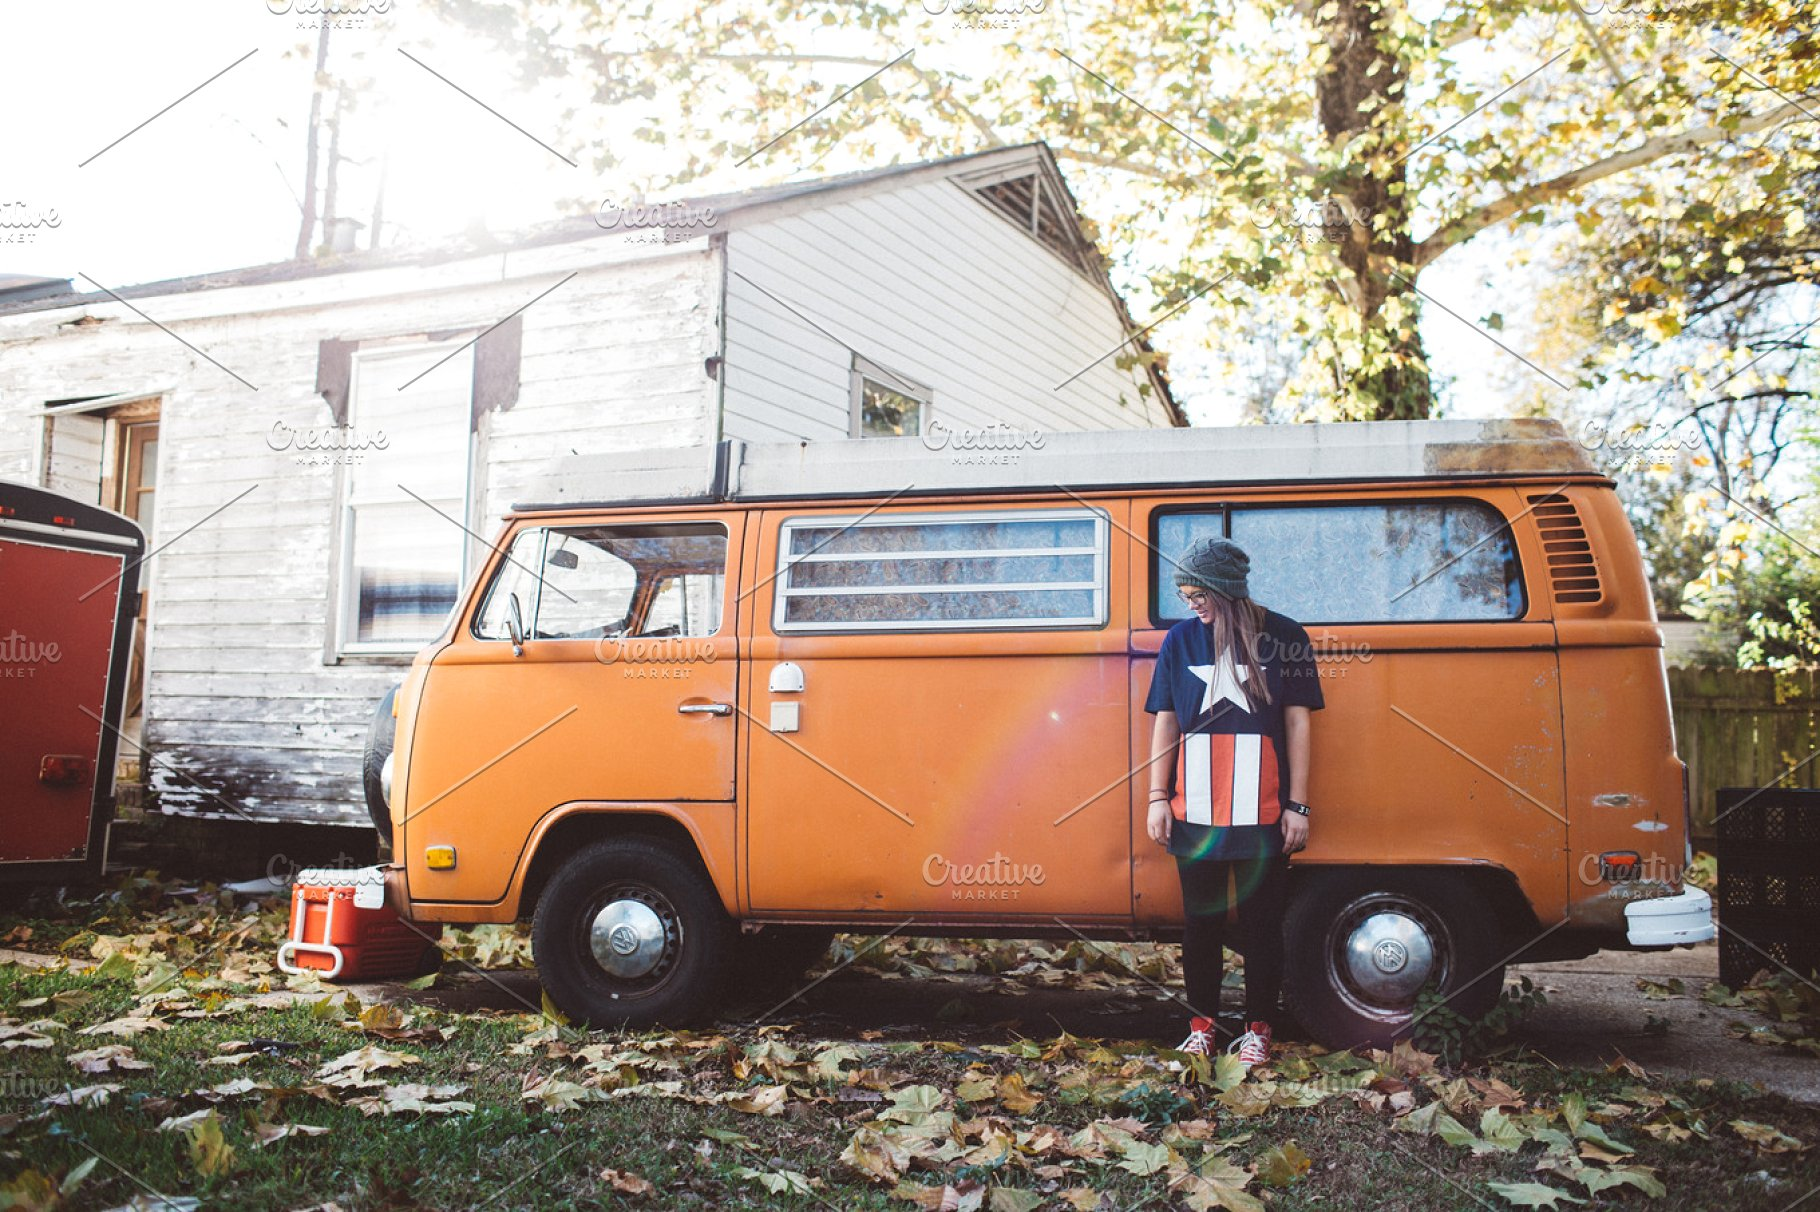 A Girl Standing Near The Van Mockup.